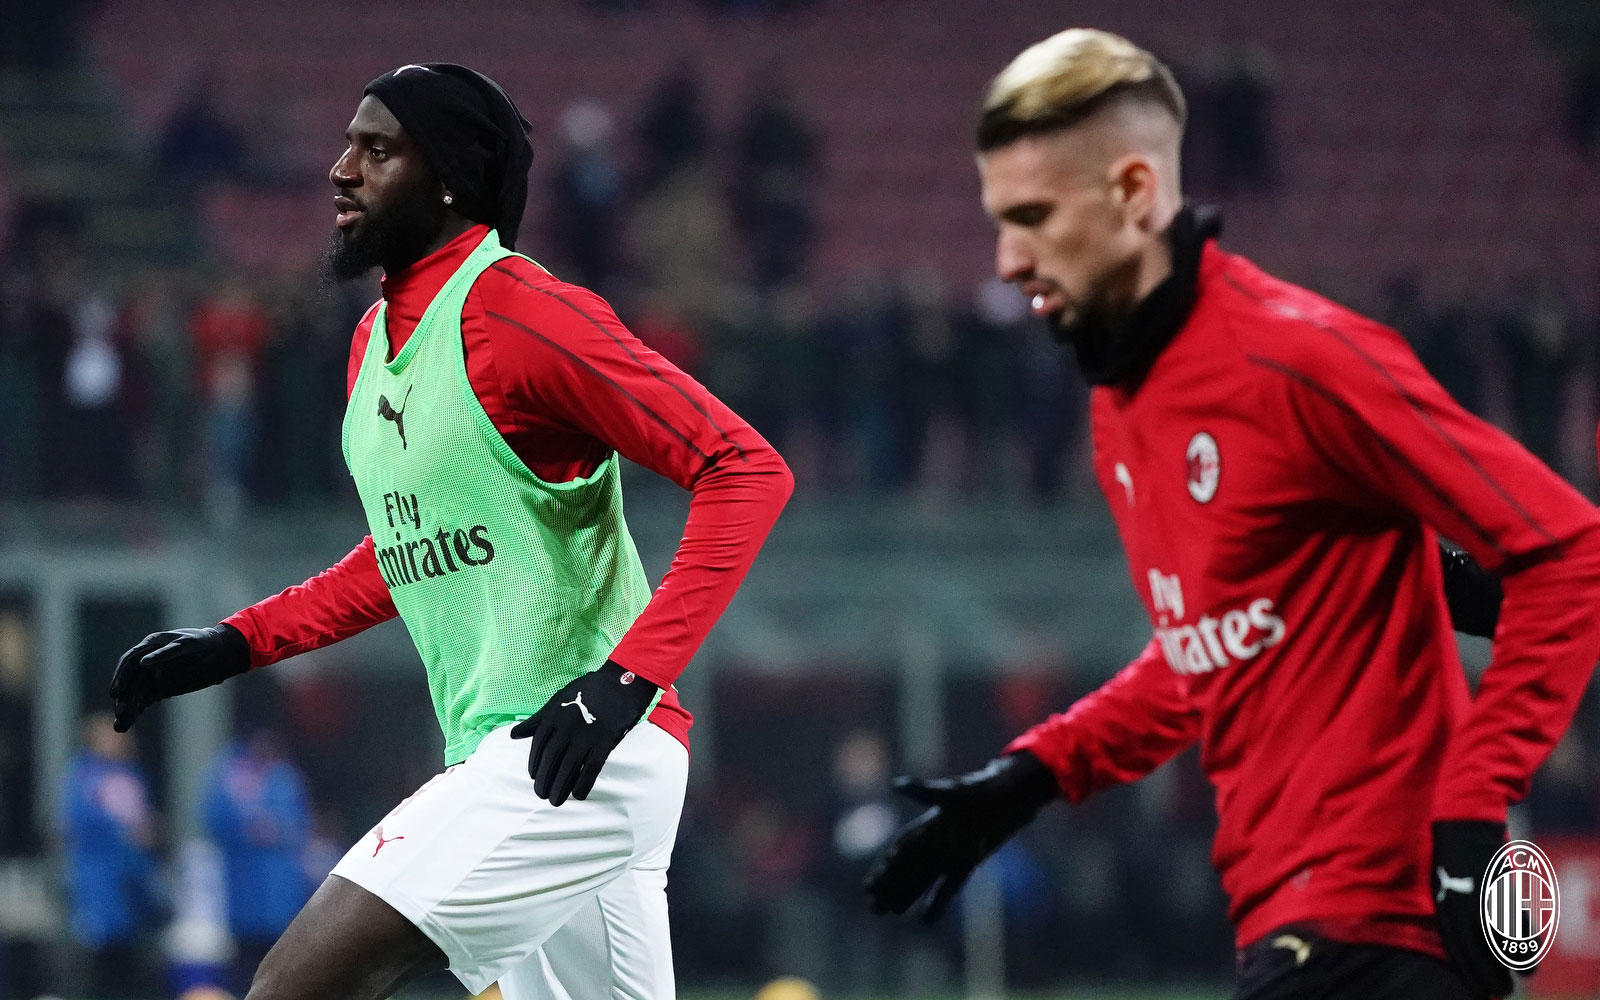 Tiémoué Bakayoko before Milan-Napoli at Stadio San Siro on January 29, 2019. (@acmilan.com)